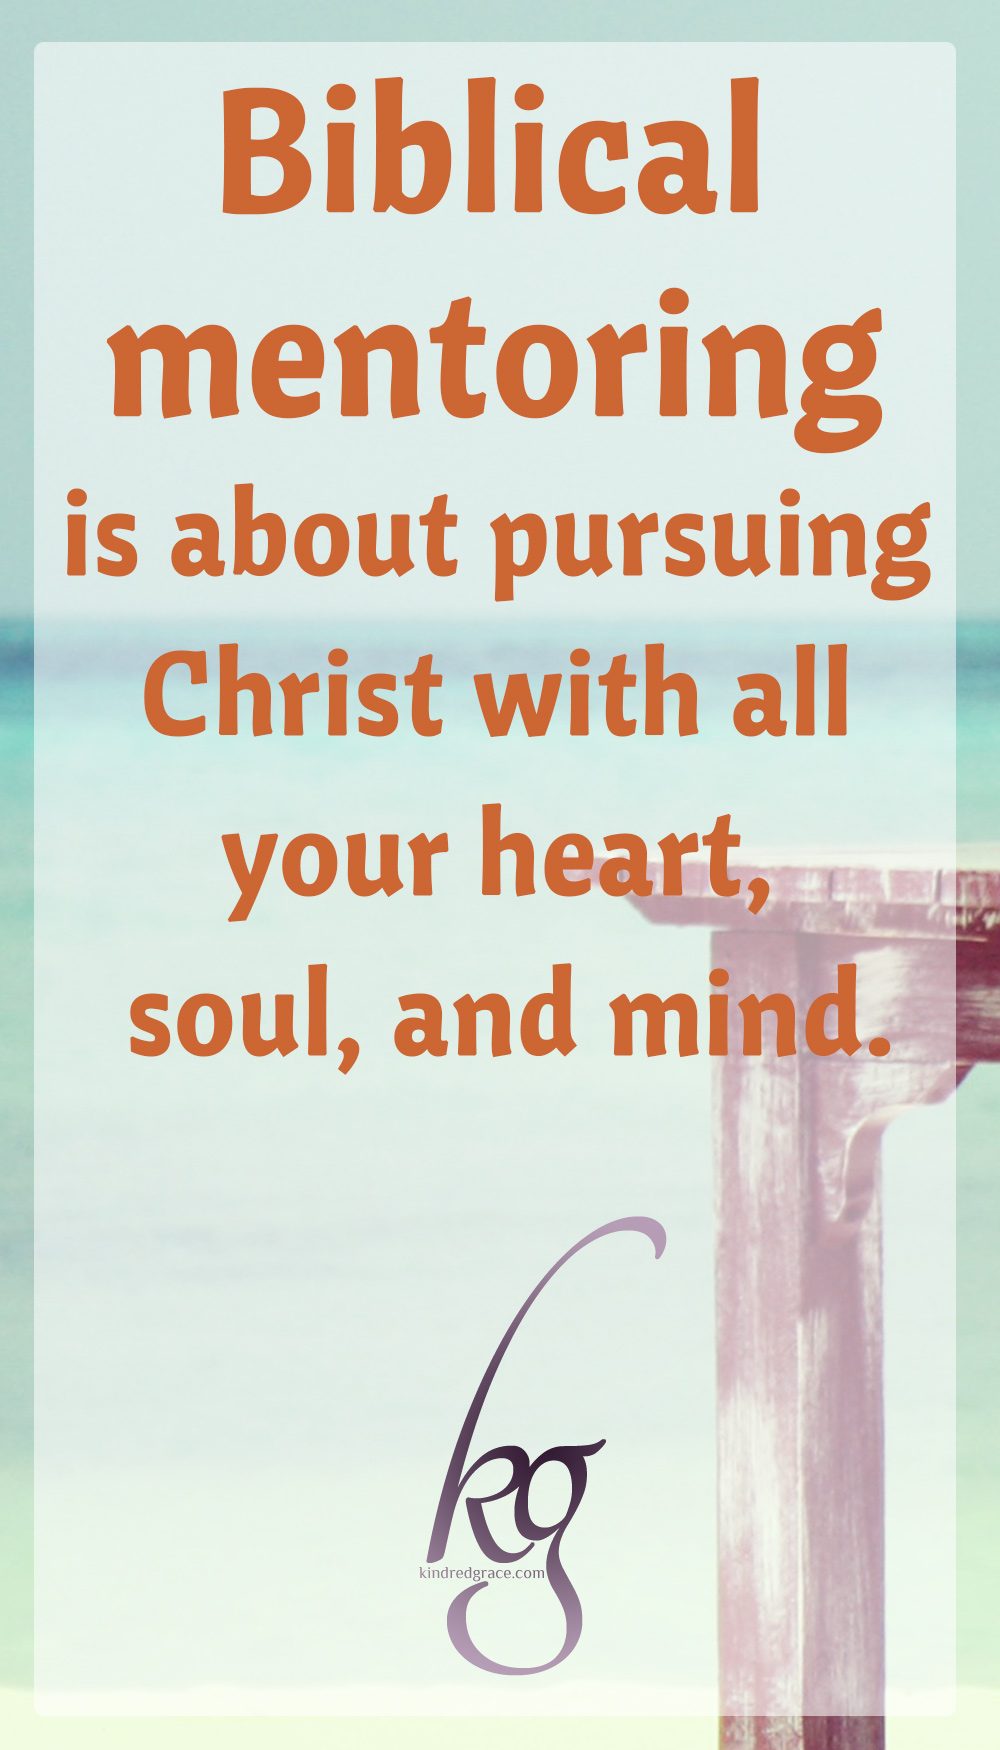 Biblical mentoring is about first pursuing Christ with all your heart, soul, and mind. Secondly, it's about reaching out to your neighbor and seeking to build a relationship rooted in Christ's love as you would with any sister in Christ.